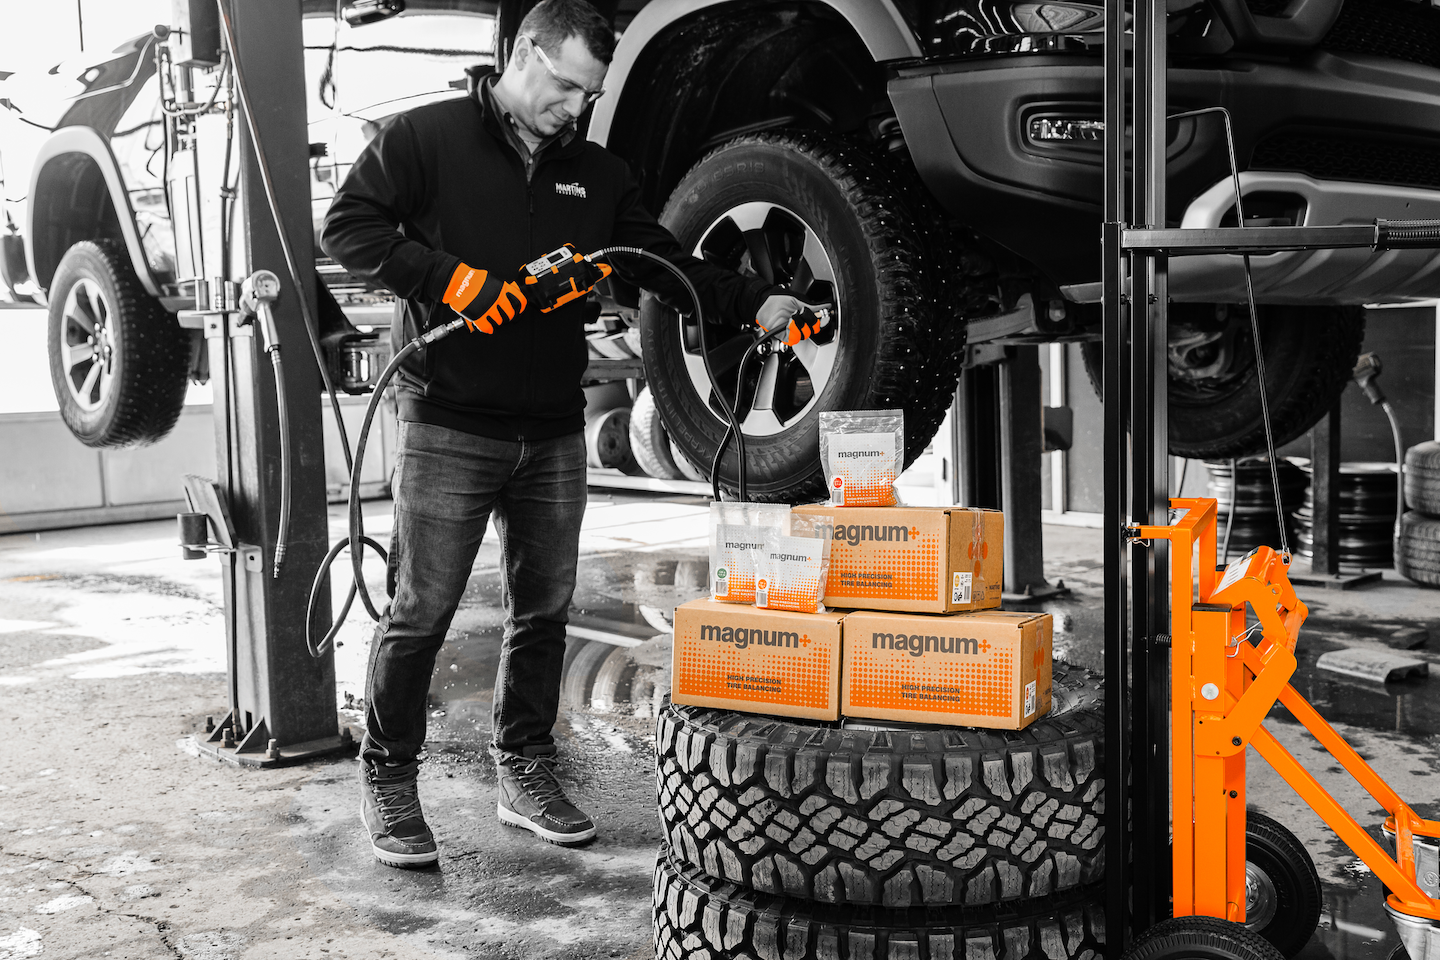 Incorporating balancing methods and procedures into preventative maintenance programs, as well as inspecting tires and wheel-end components, will help fleets prevent balancing issues and help mitigate future expenses.